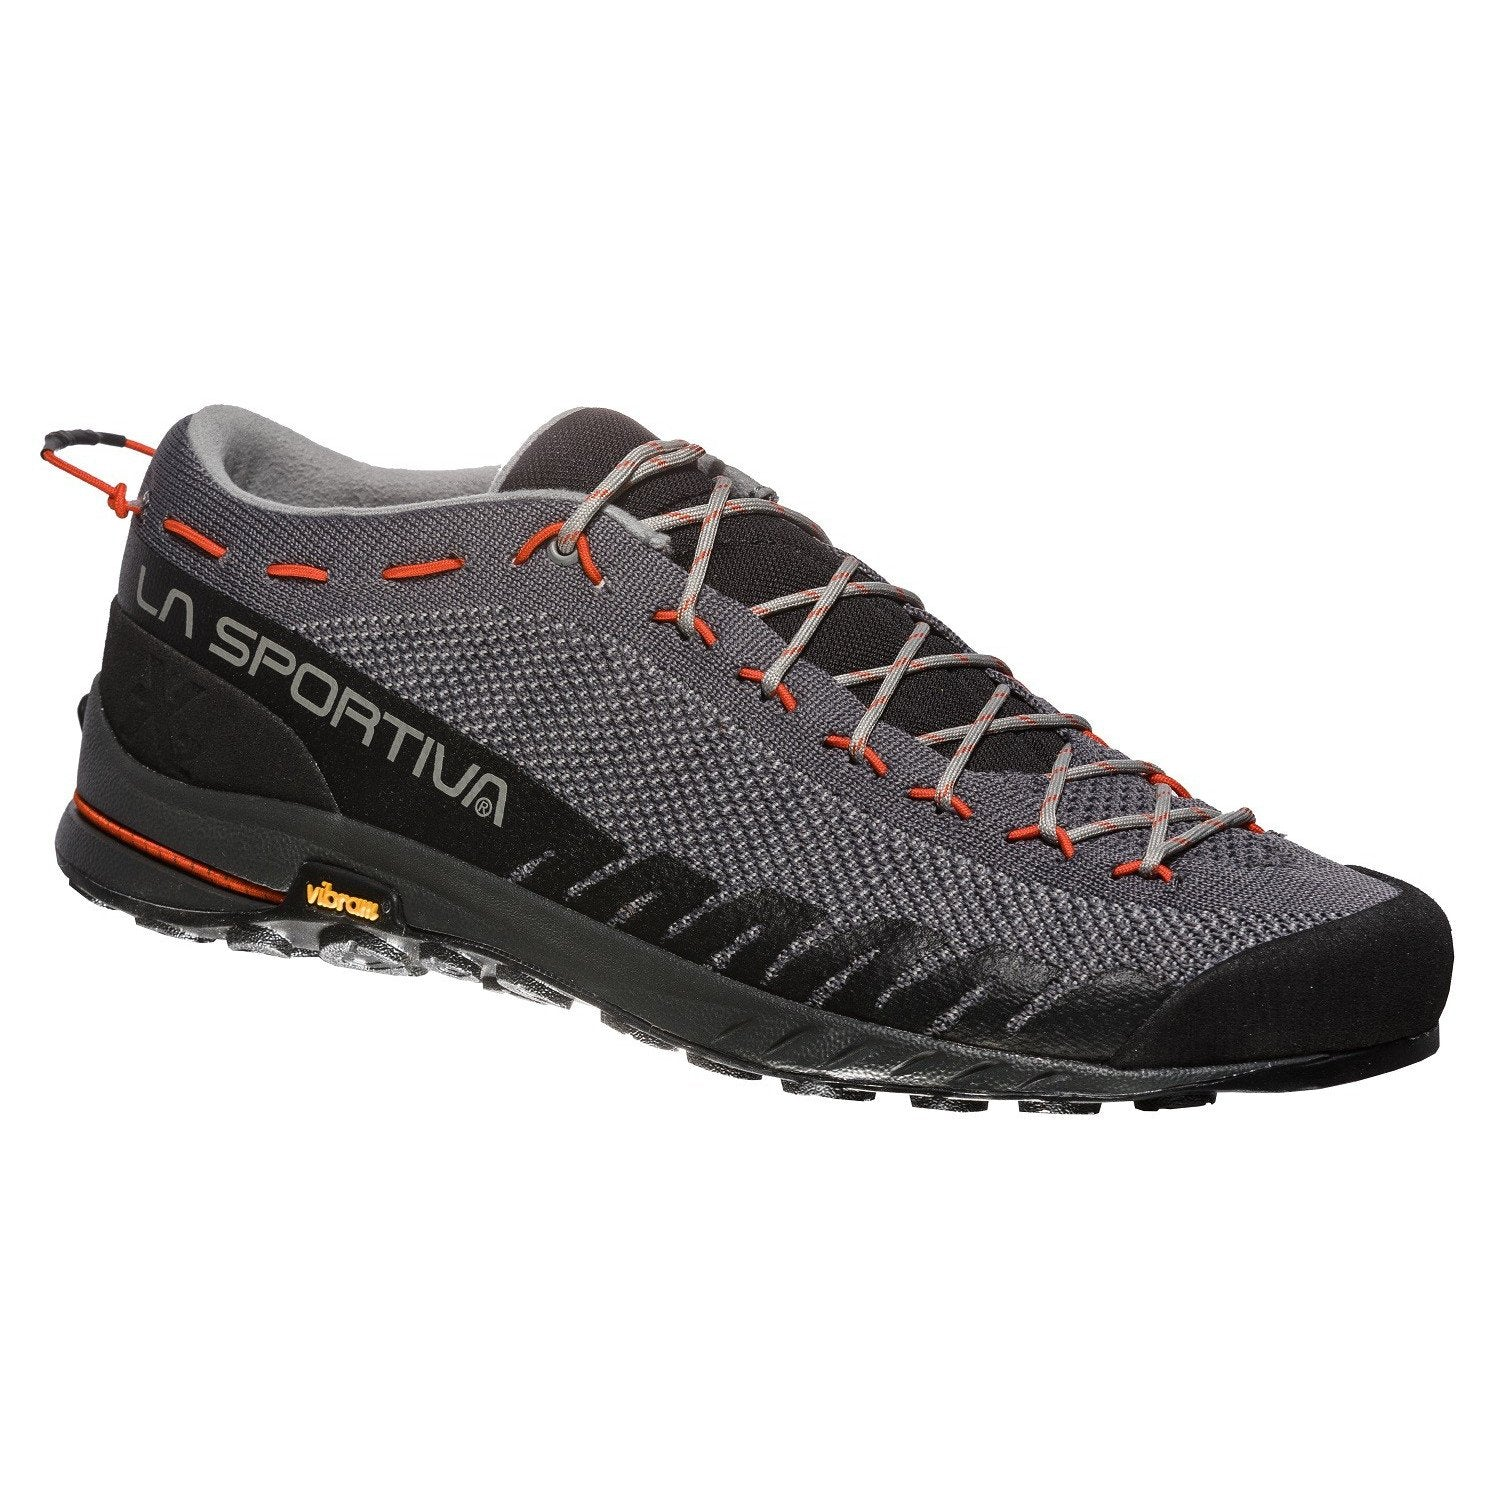 La Sportiva TX2 in Grey & Orange